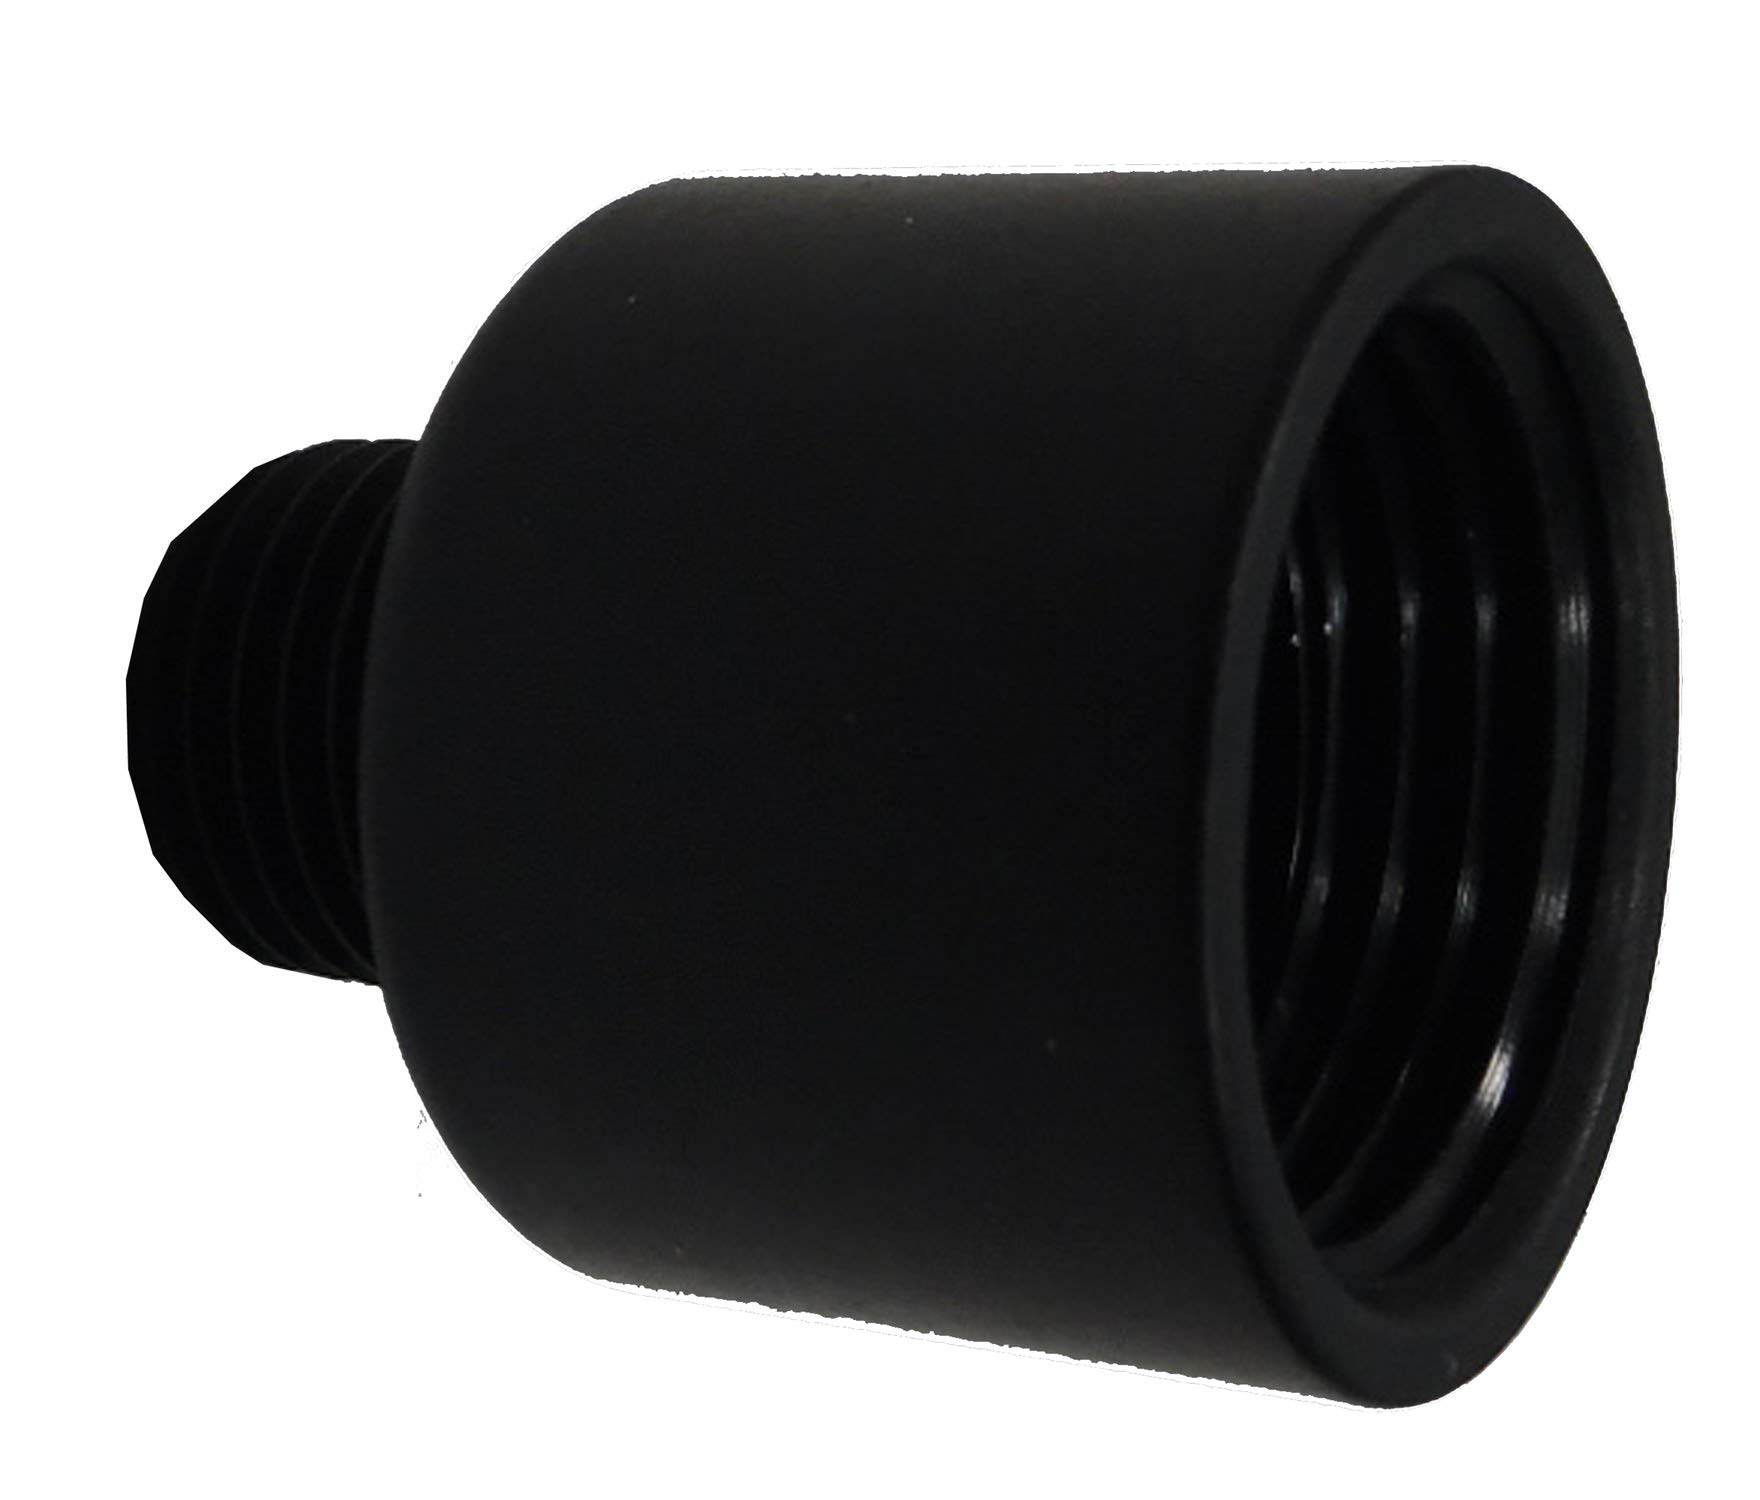 Fittings 1-4 Male - .825x14 Female air Supply Adapter ASA - Air by Fittings